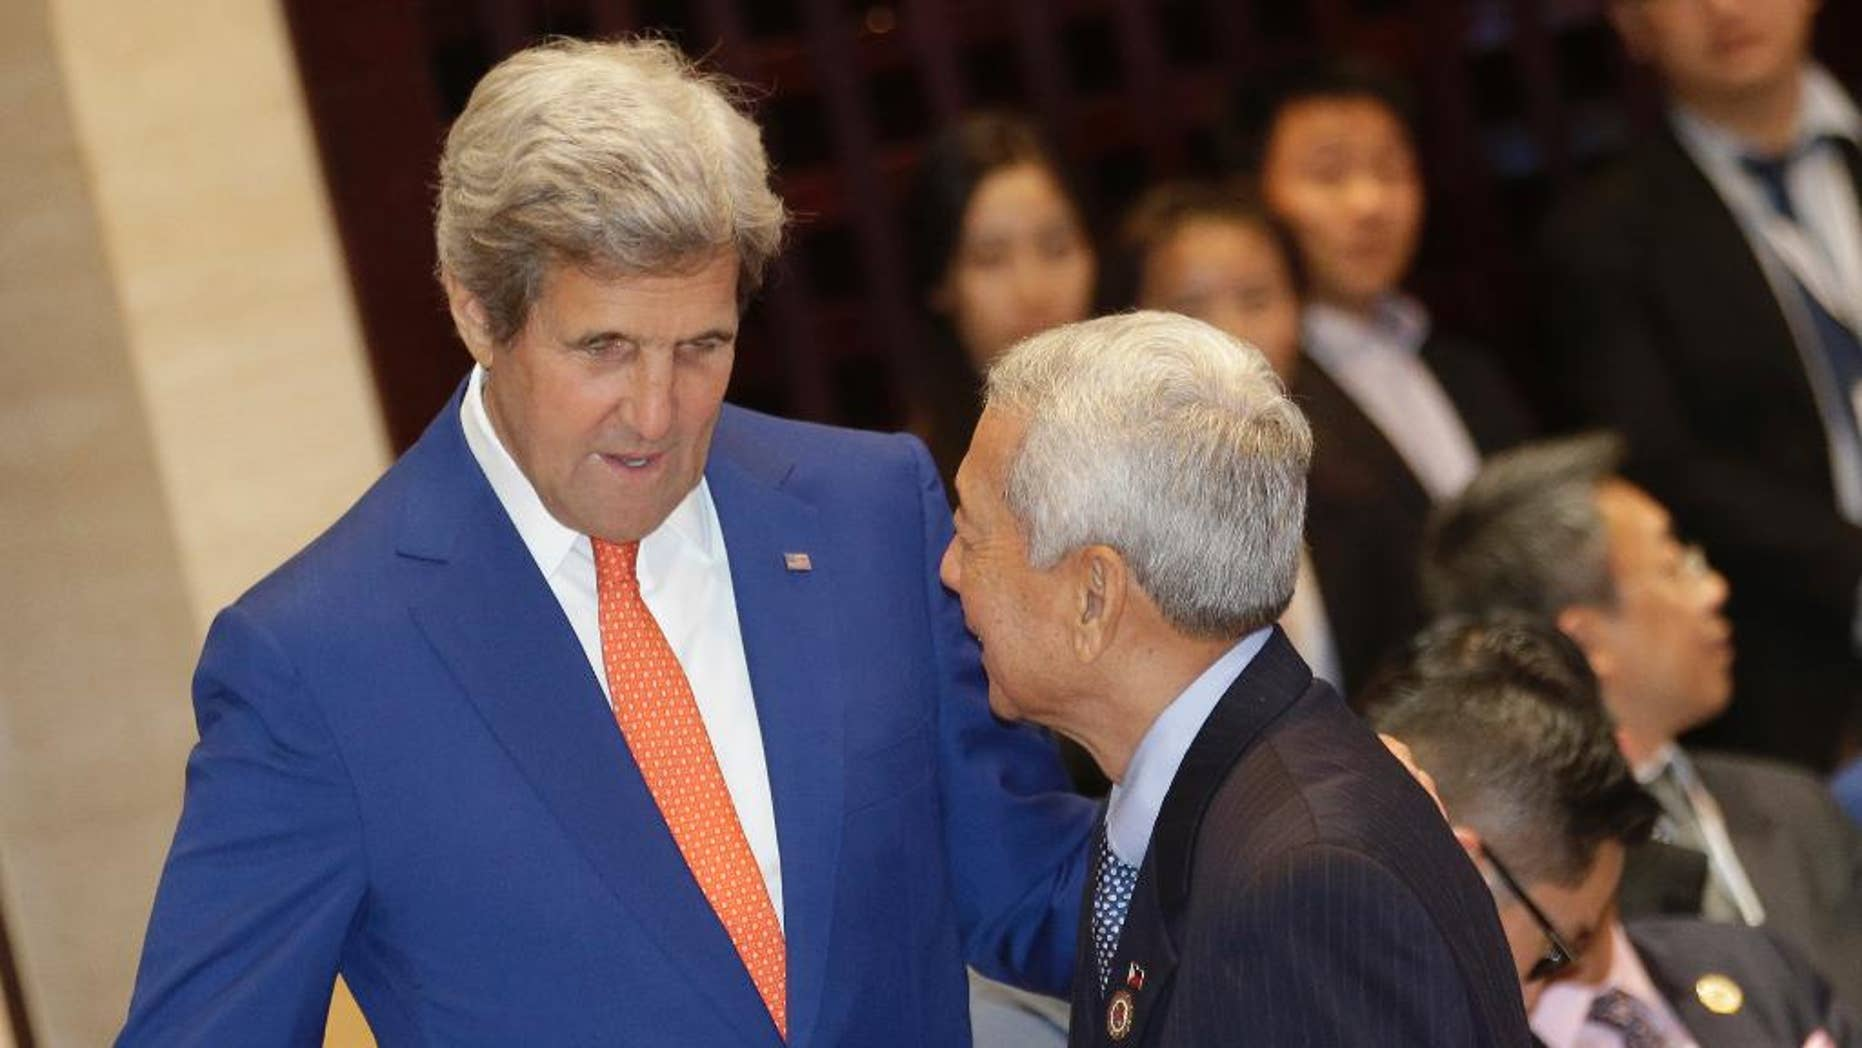 U.S. Secretary of State John Kerry, left, talks to Philippine Foreign Secretary Perfecto Yasay Jr. before the Association of Southeast Asian Nations (ASEAN)-U.S. Foreign Ministers Meeting in Vientiane, Laos, Monday, July 25, 2016. Southeast Asia's main grouping made a last-ditch attempt to reach a consensus on countering China's territorial expansion in the South China Sea, but their deadlock appeared far from being resolved as minutes ticked by before a critical meeting with the Chinese foreign minister Monday. (AP Photo/Sakchai Lalit)